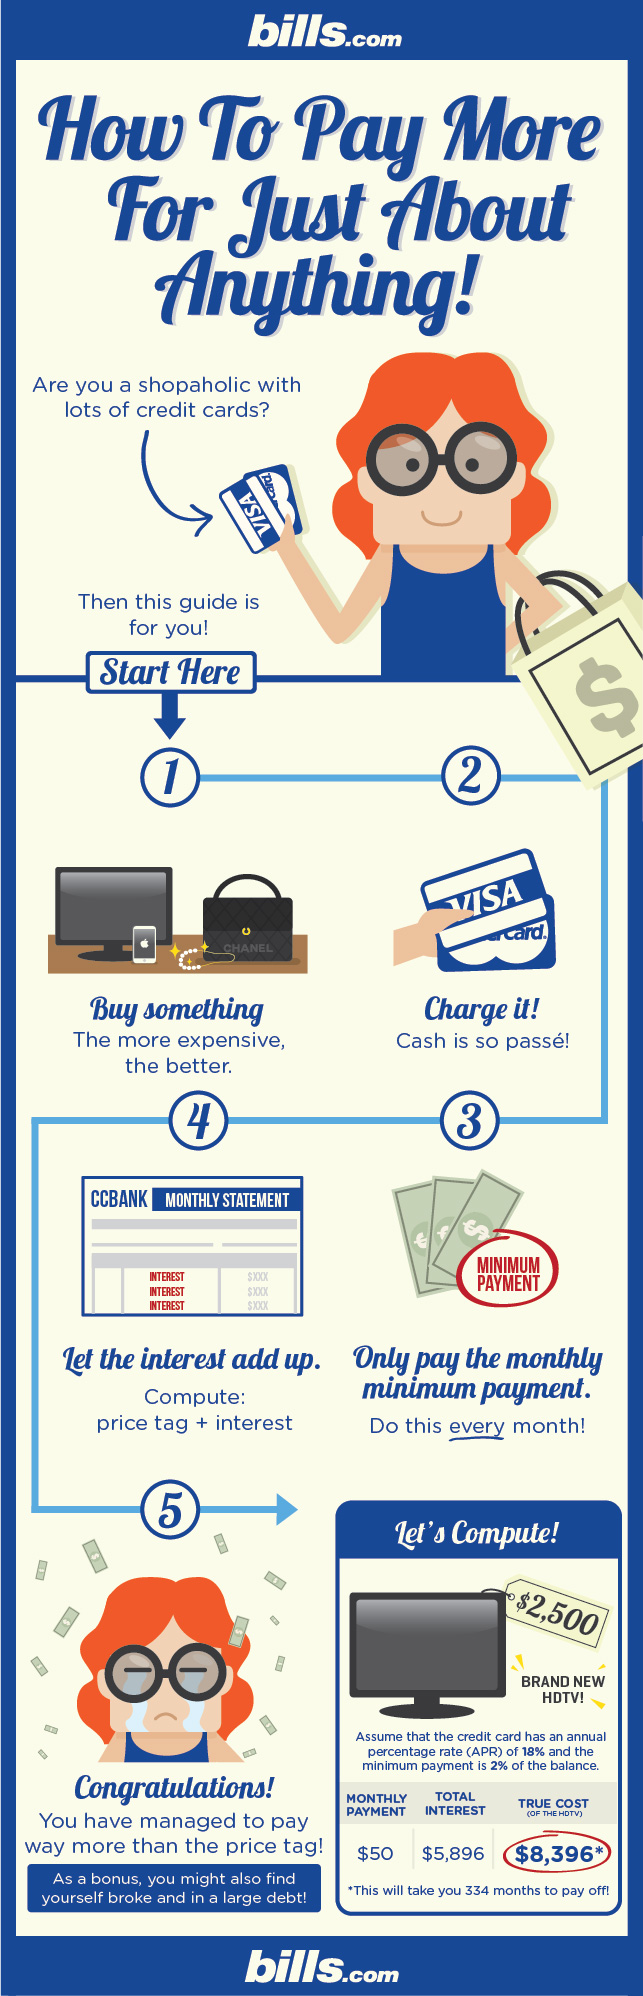 True Cost of Credit Card Purchases calculator